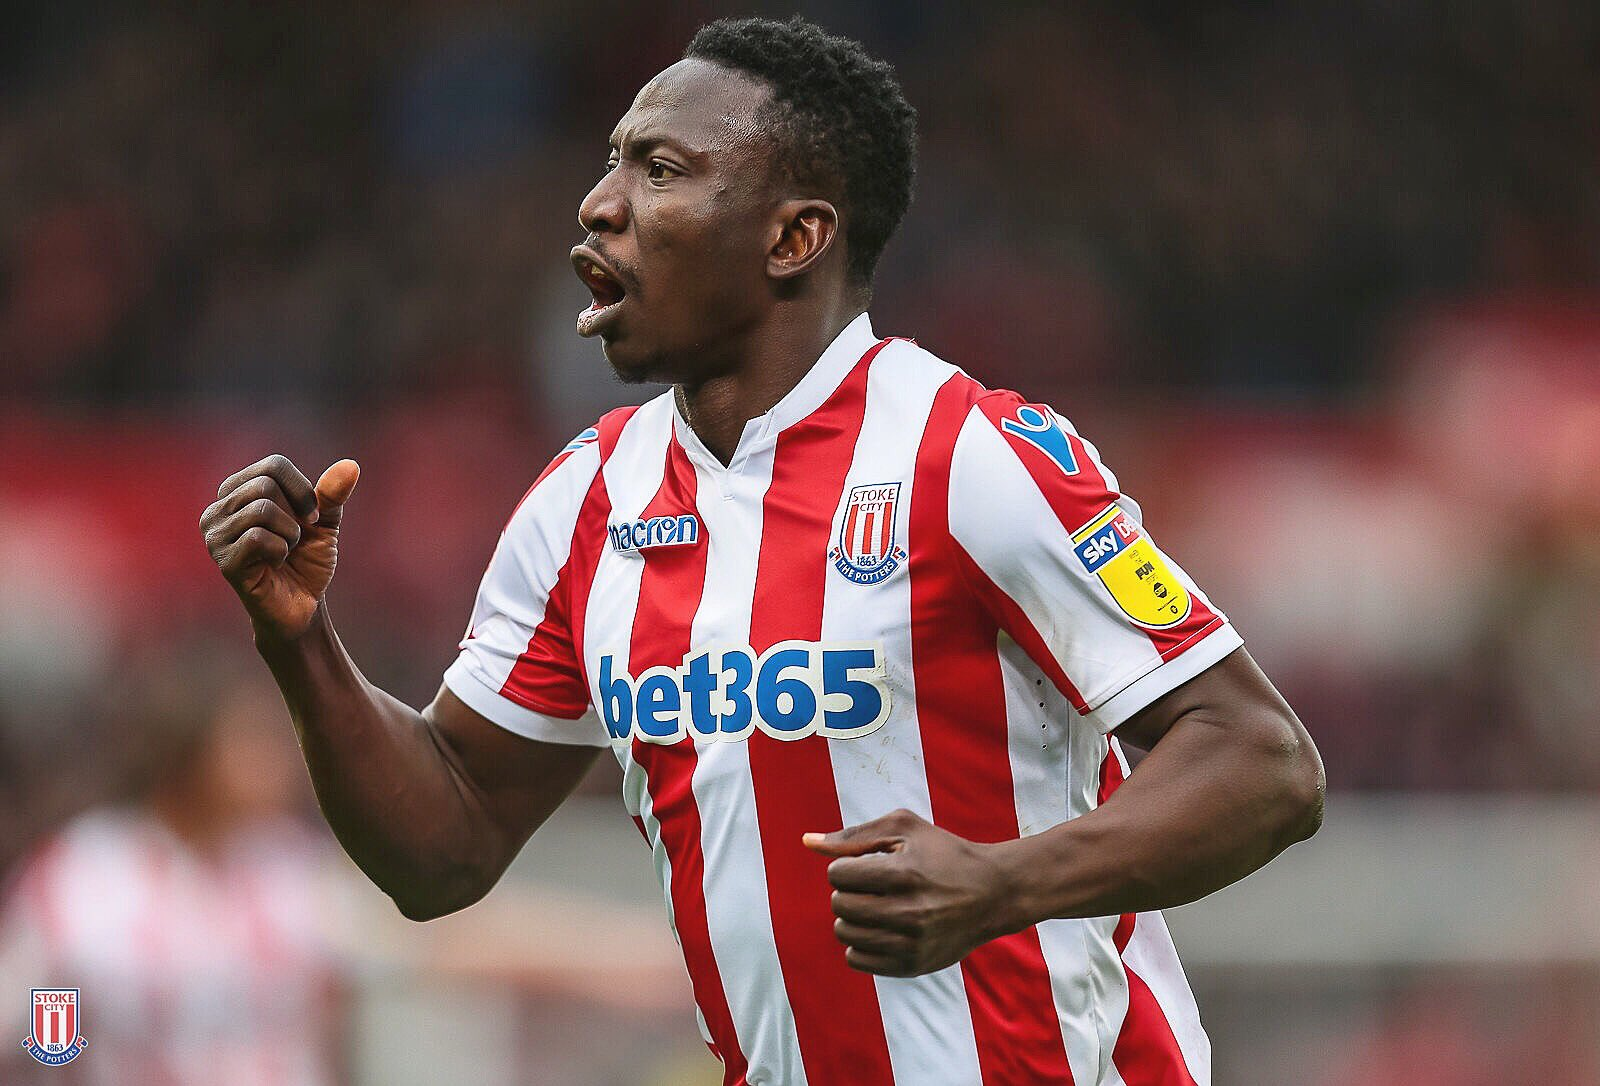 Etebo To Work Under New Manager At Stoke City After Jones Sacking